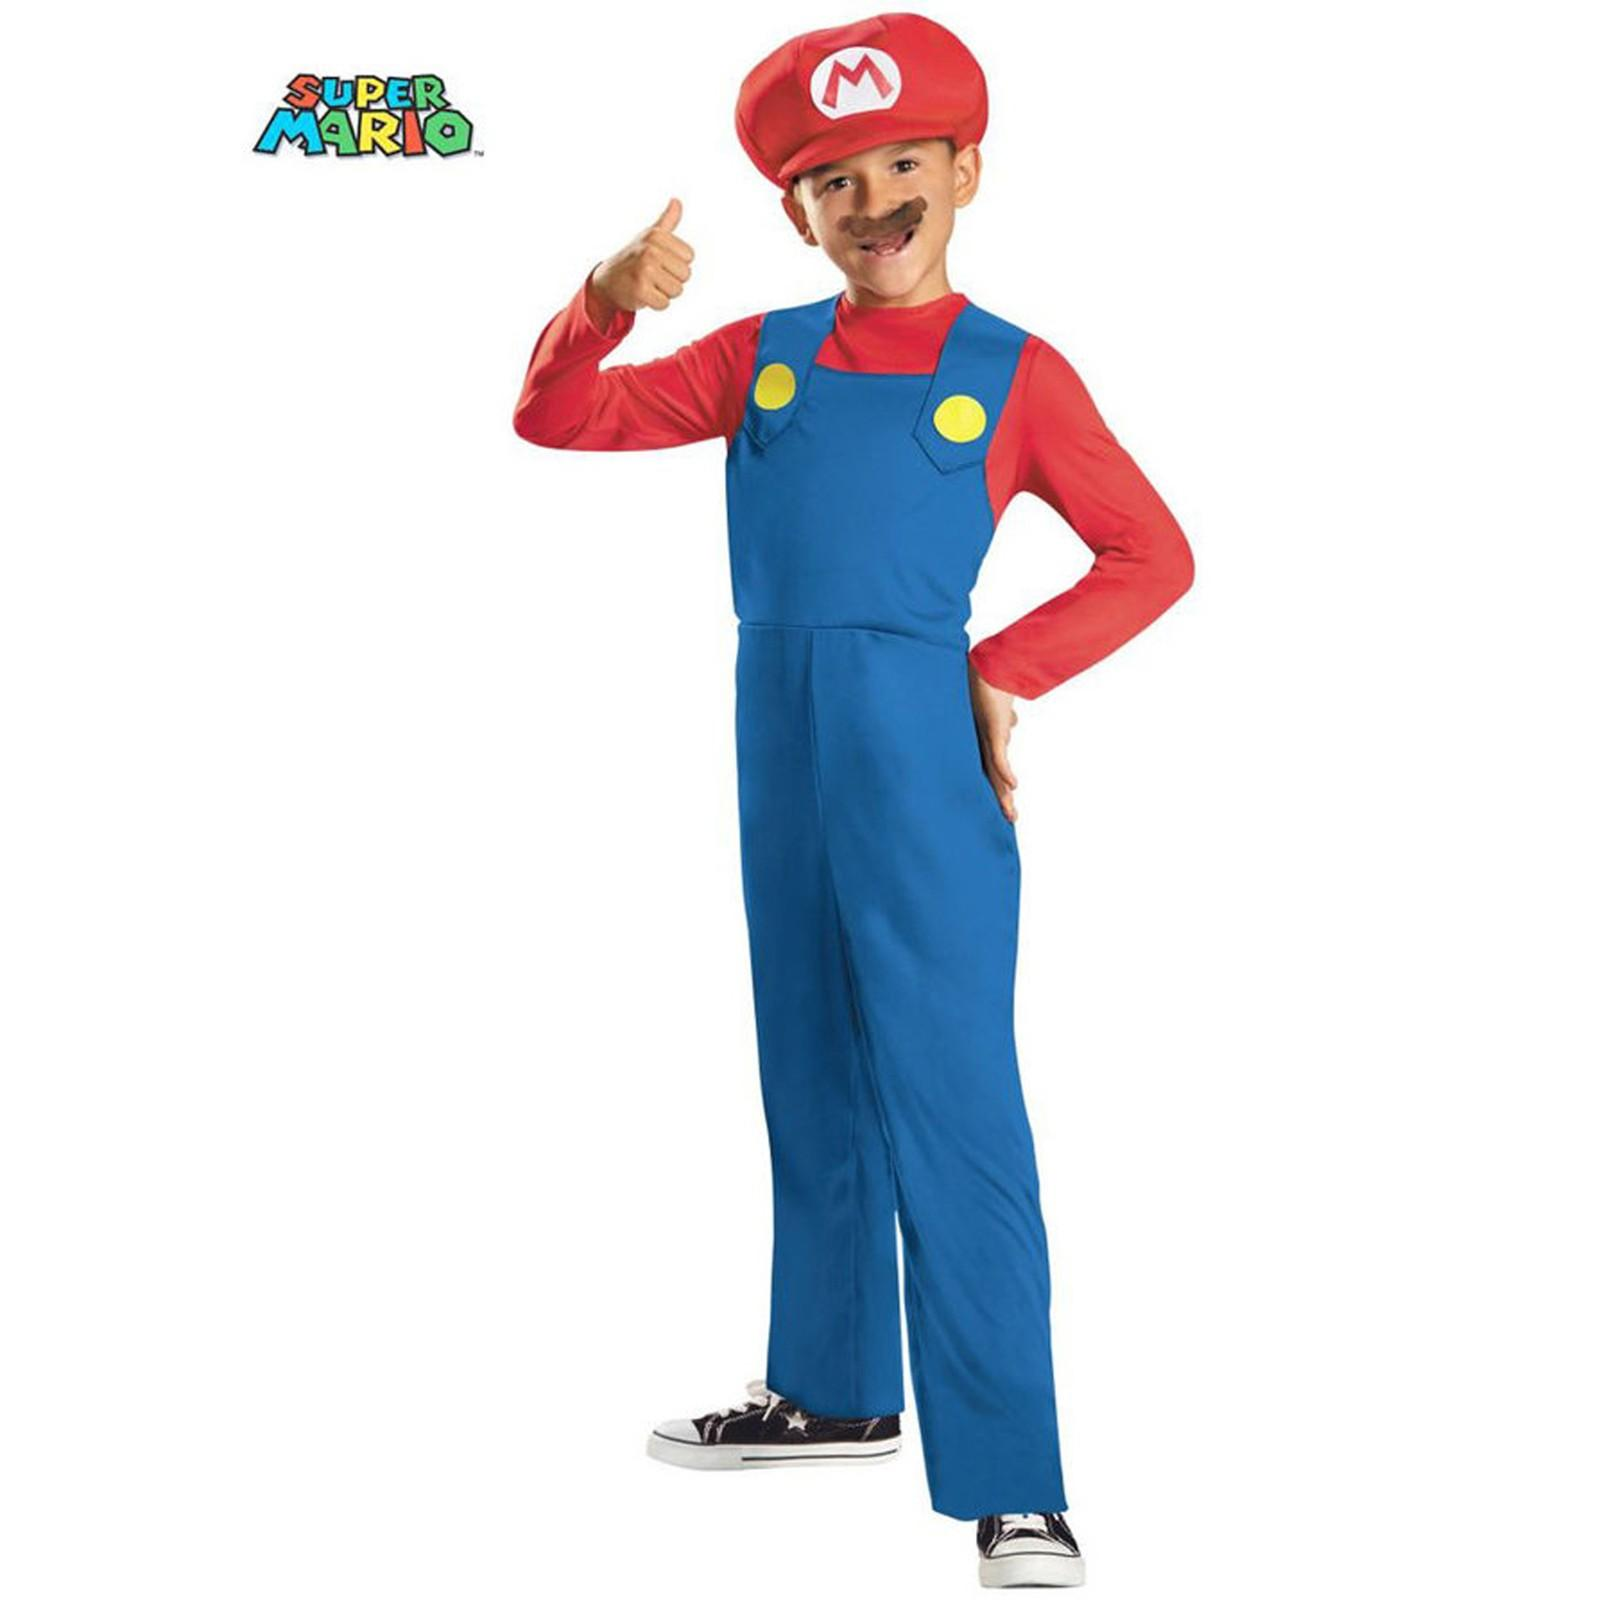 Super Mario Bros. Mario Classic Child Costume  sc 1 st  Walmart & Super Mario Bros. Mario Classic Child Costume - Walmart.com